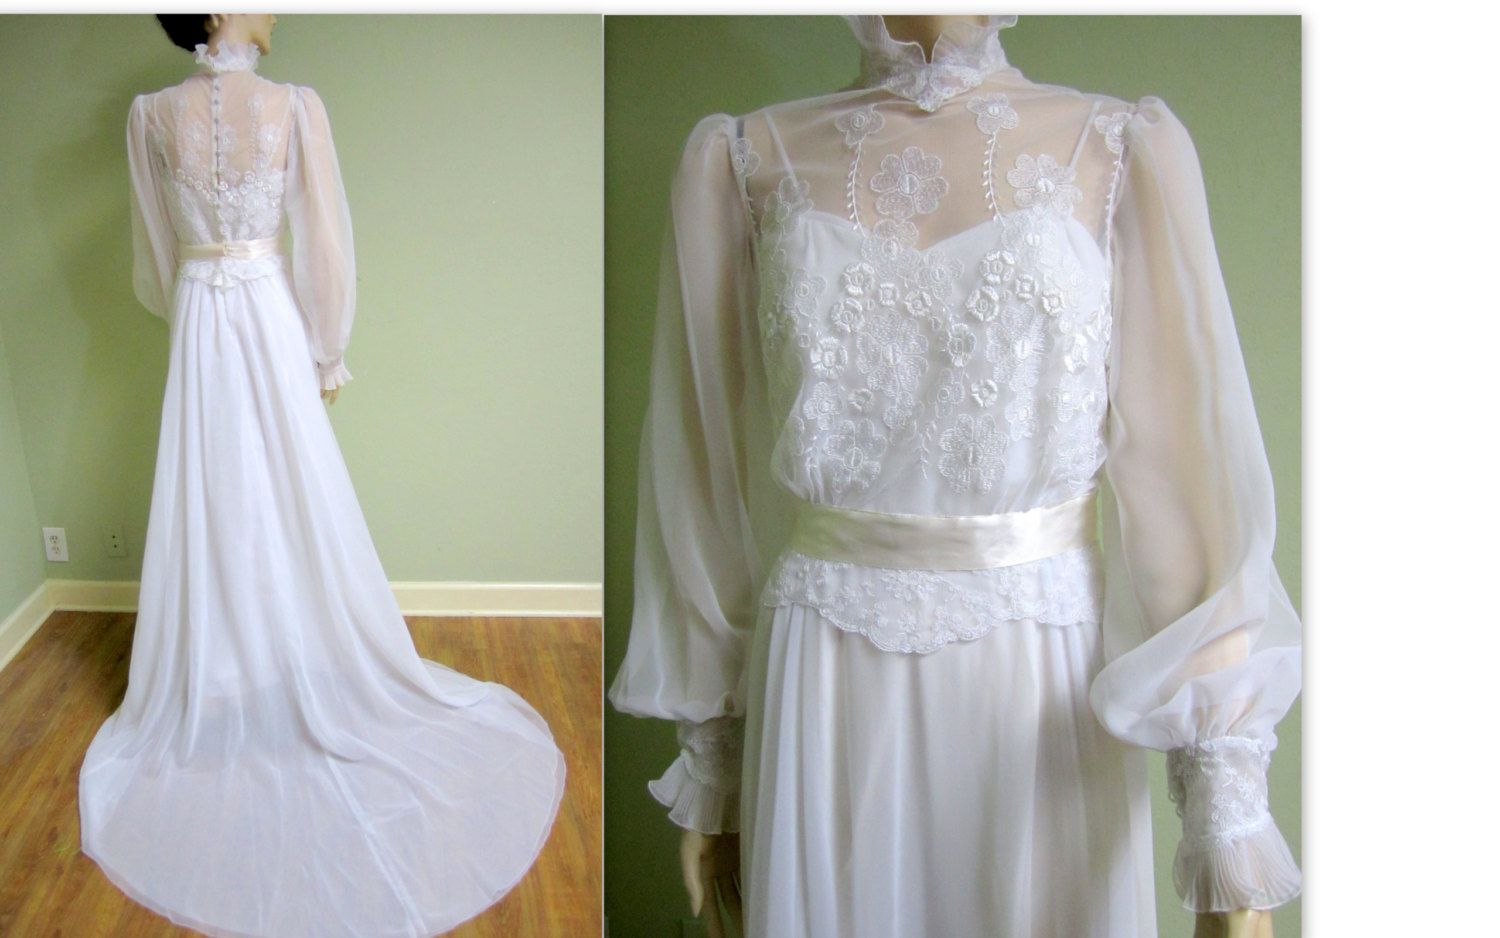 Ideas 1970s Wedding Dresses 1000 images about our town on pinterest edwardian wedding dresses child fashion and dress